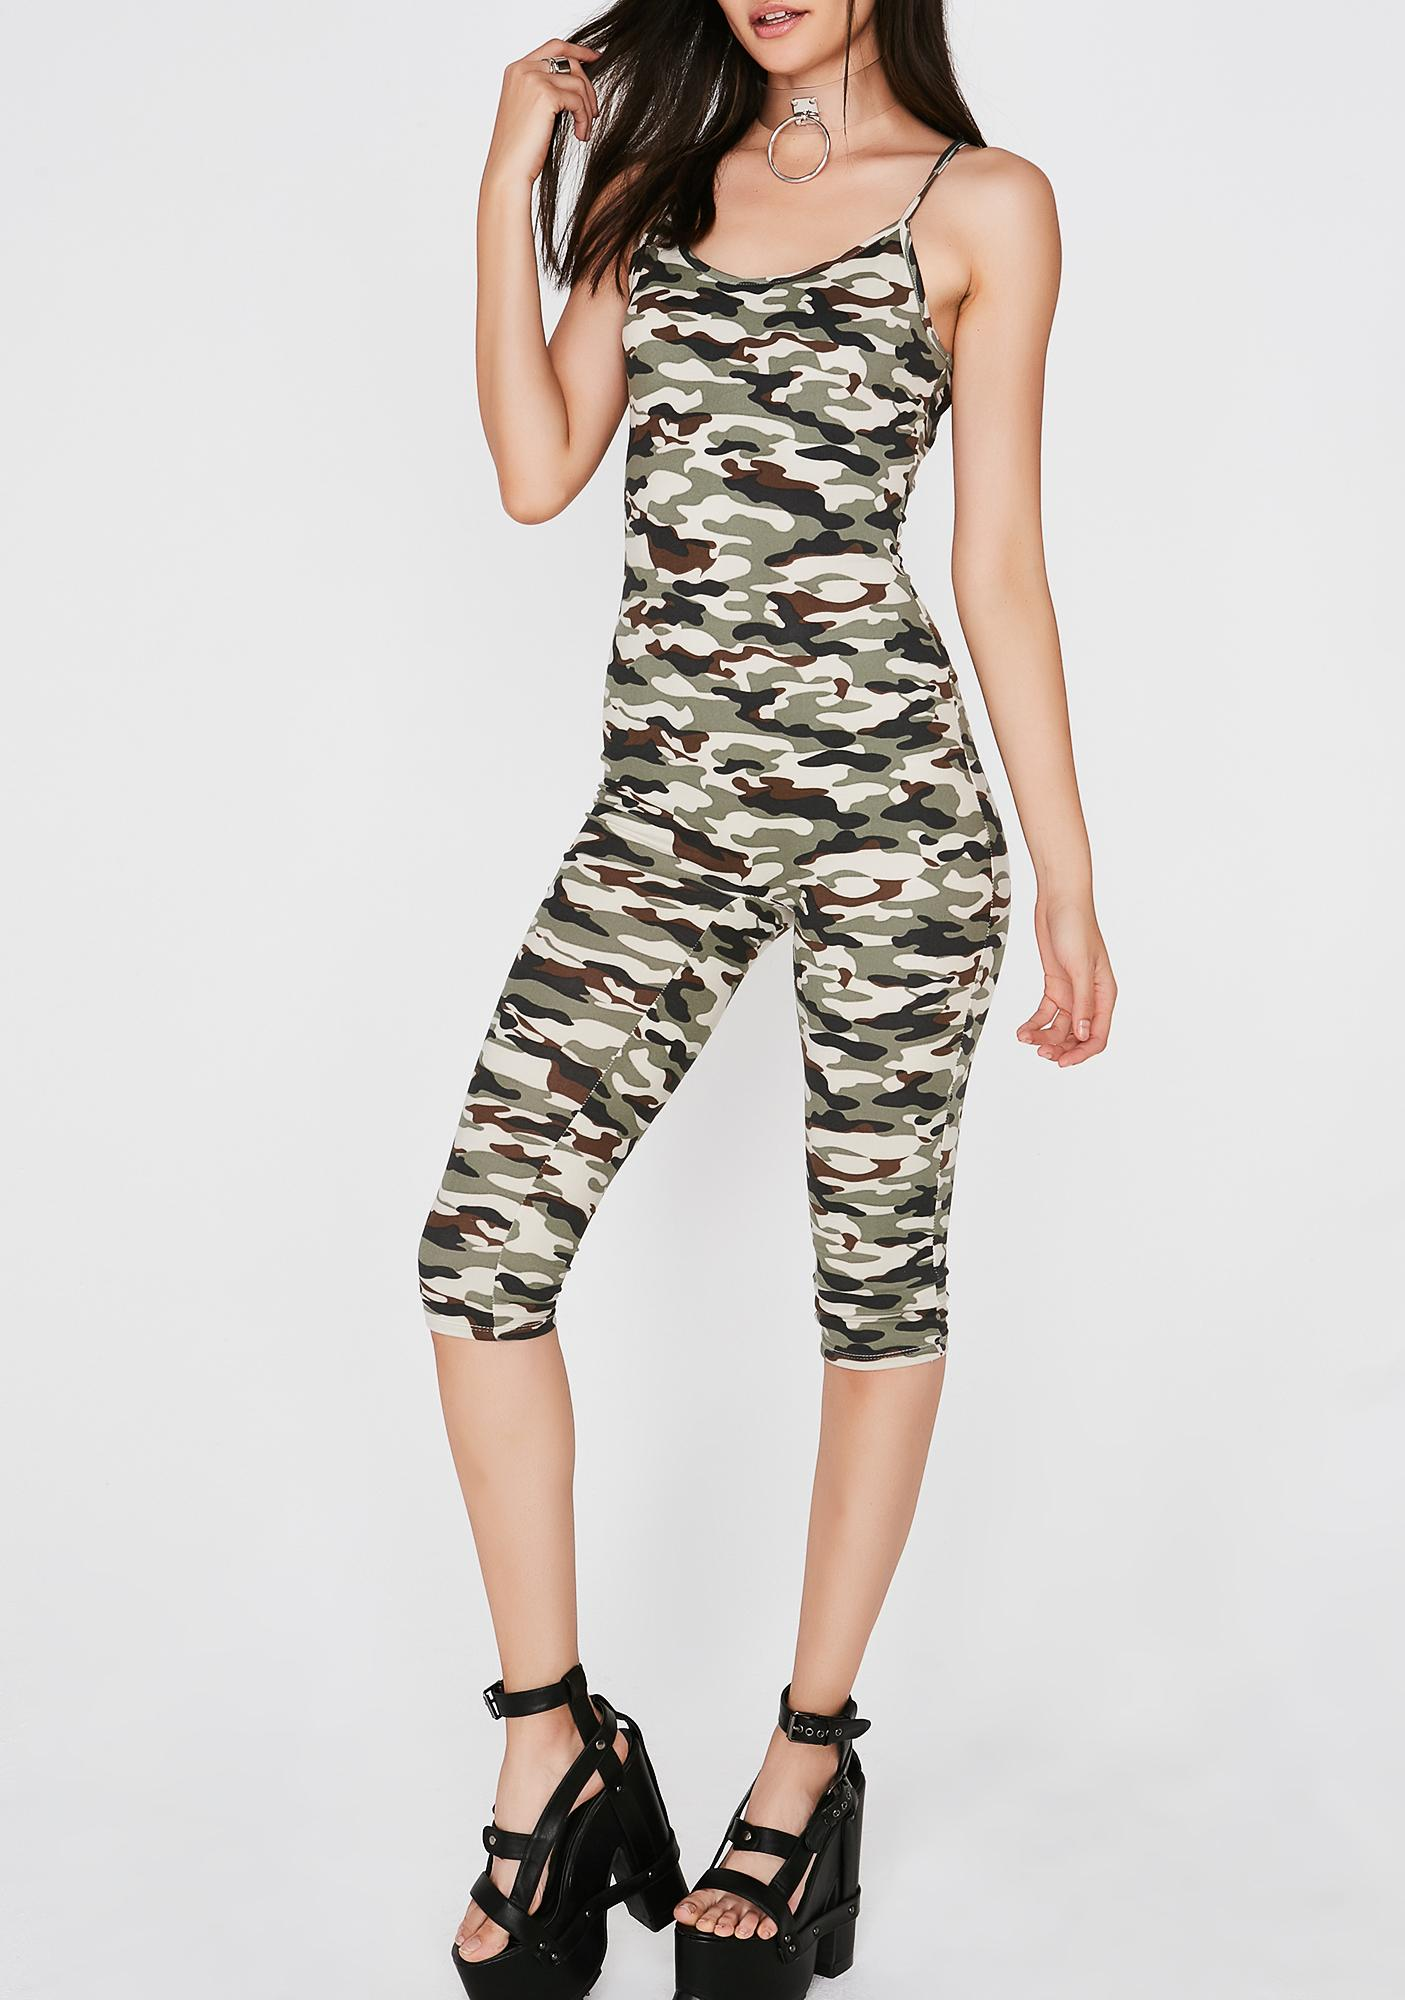 Ready To Aim Camo Catsuit